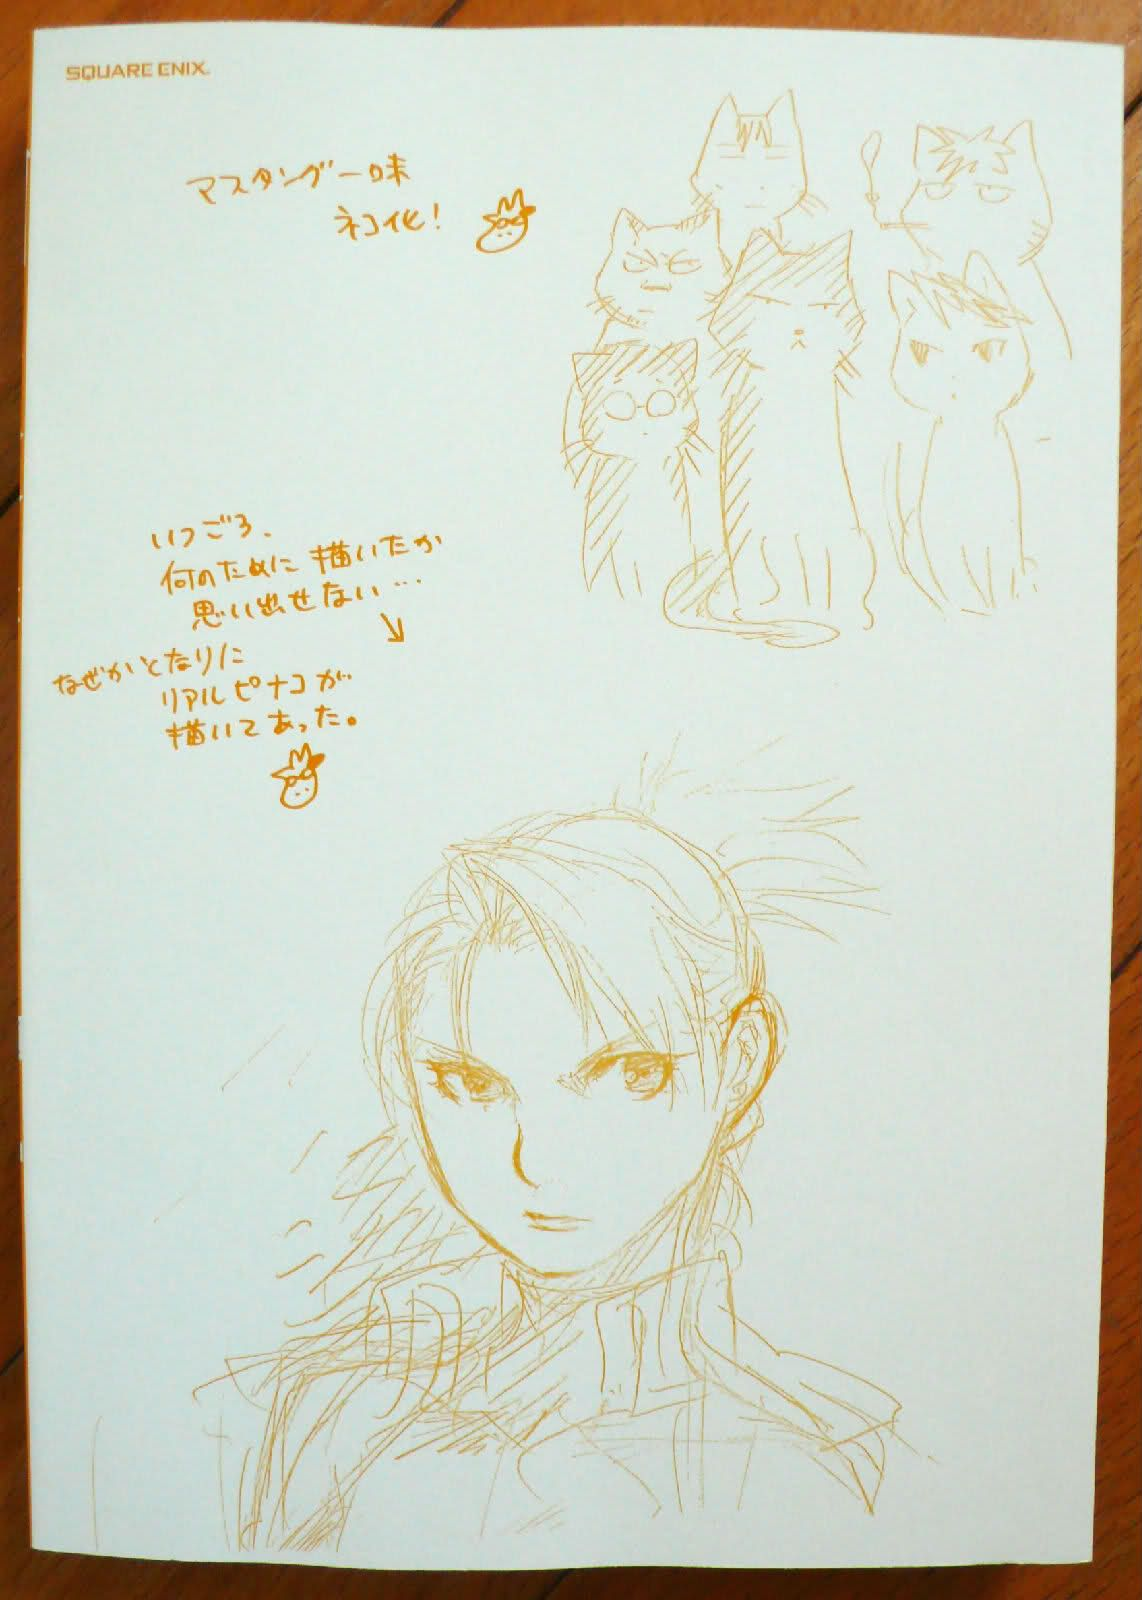 early roy mustang and riza hawkeye concept art as drawn by arakawa early roy mustang and riza hawkeye concept art as drawn by arakawa both can be seen in the fullmetal alchemist unabridged edition volumes 3 and 4